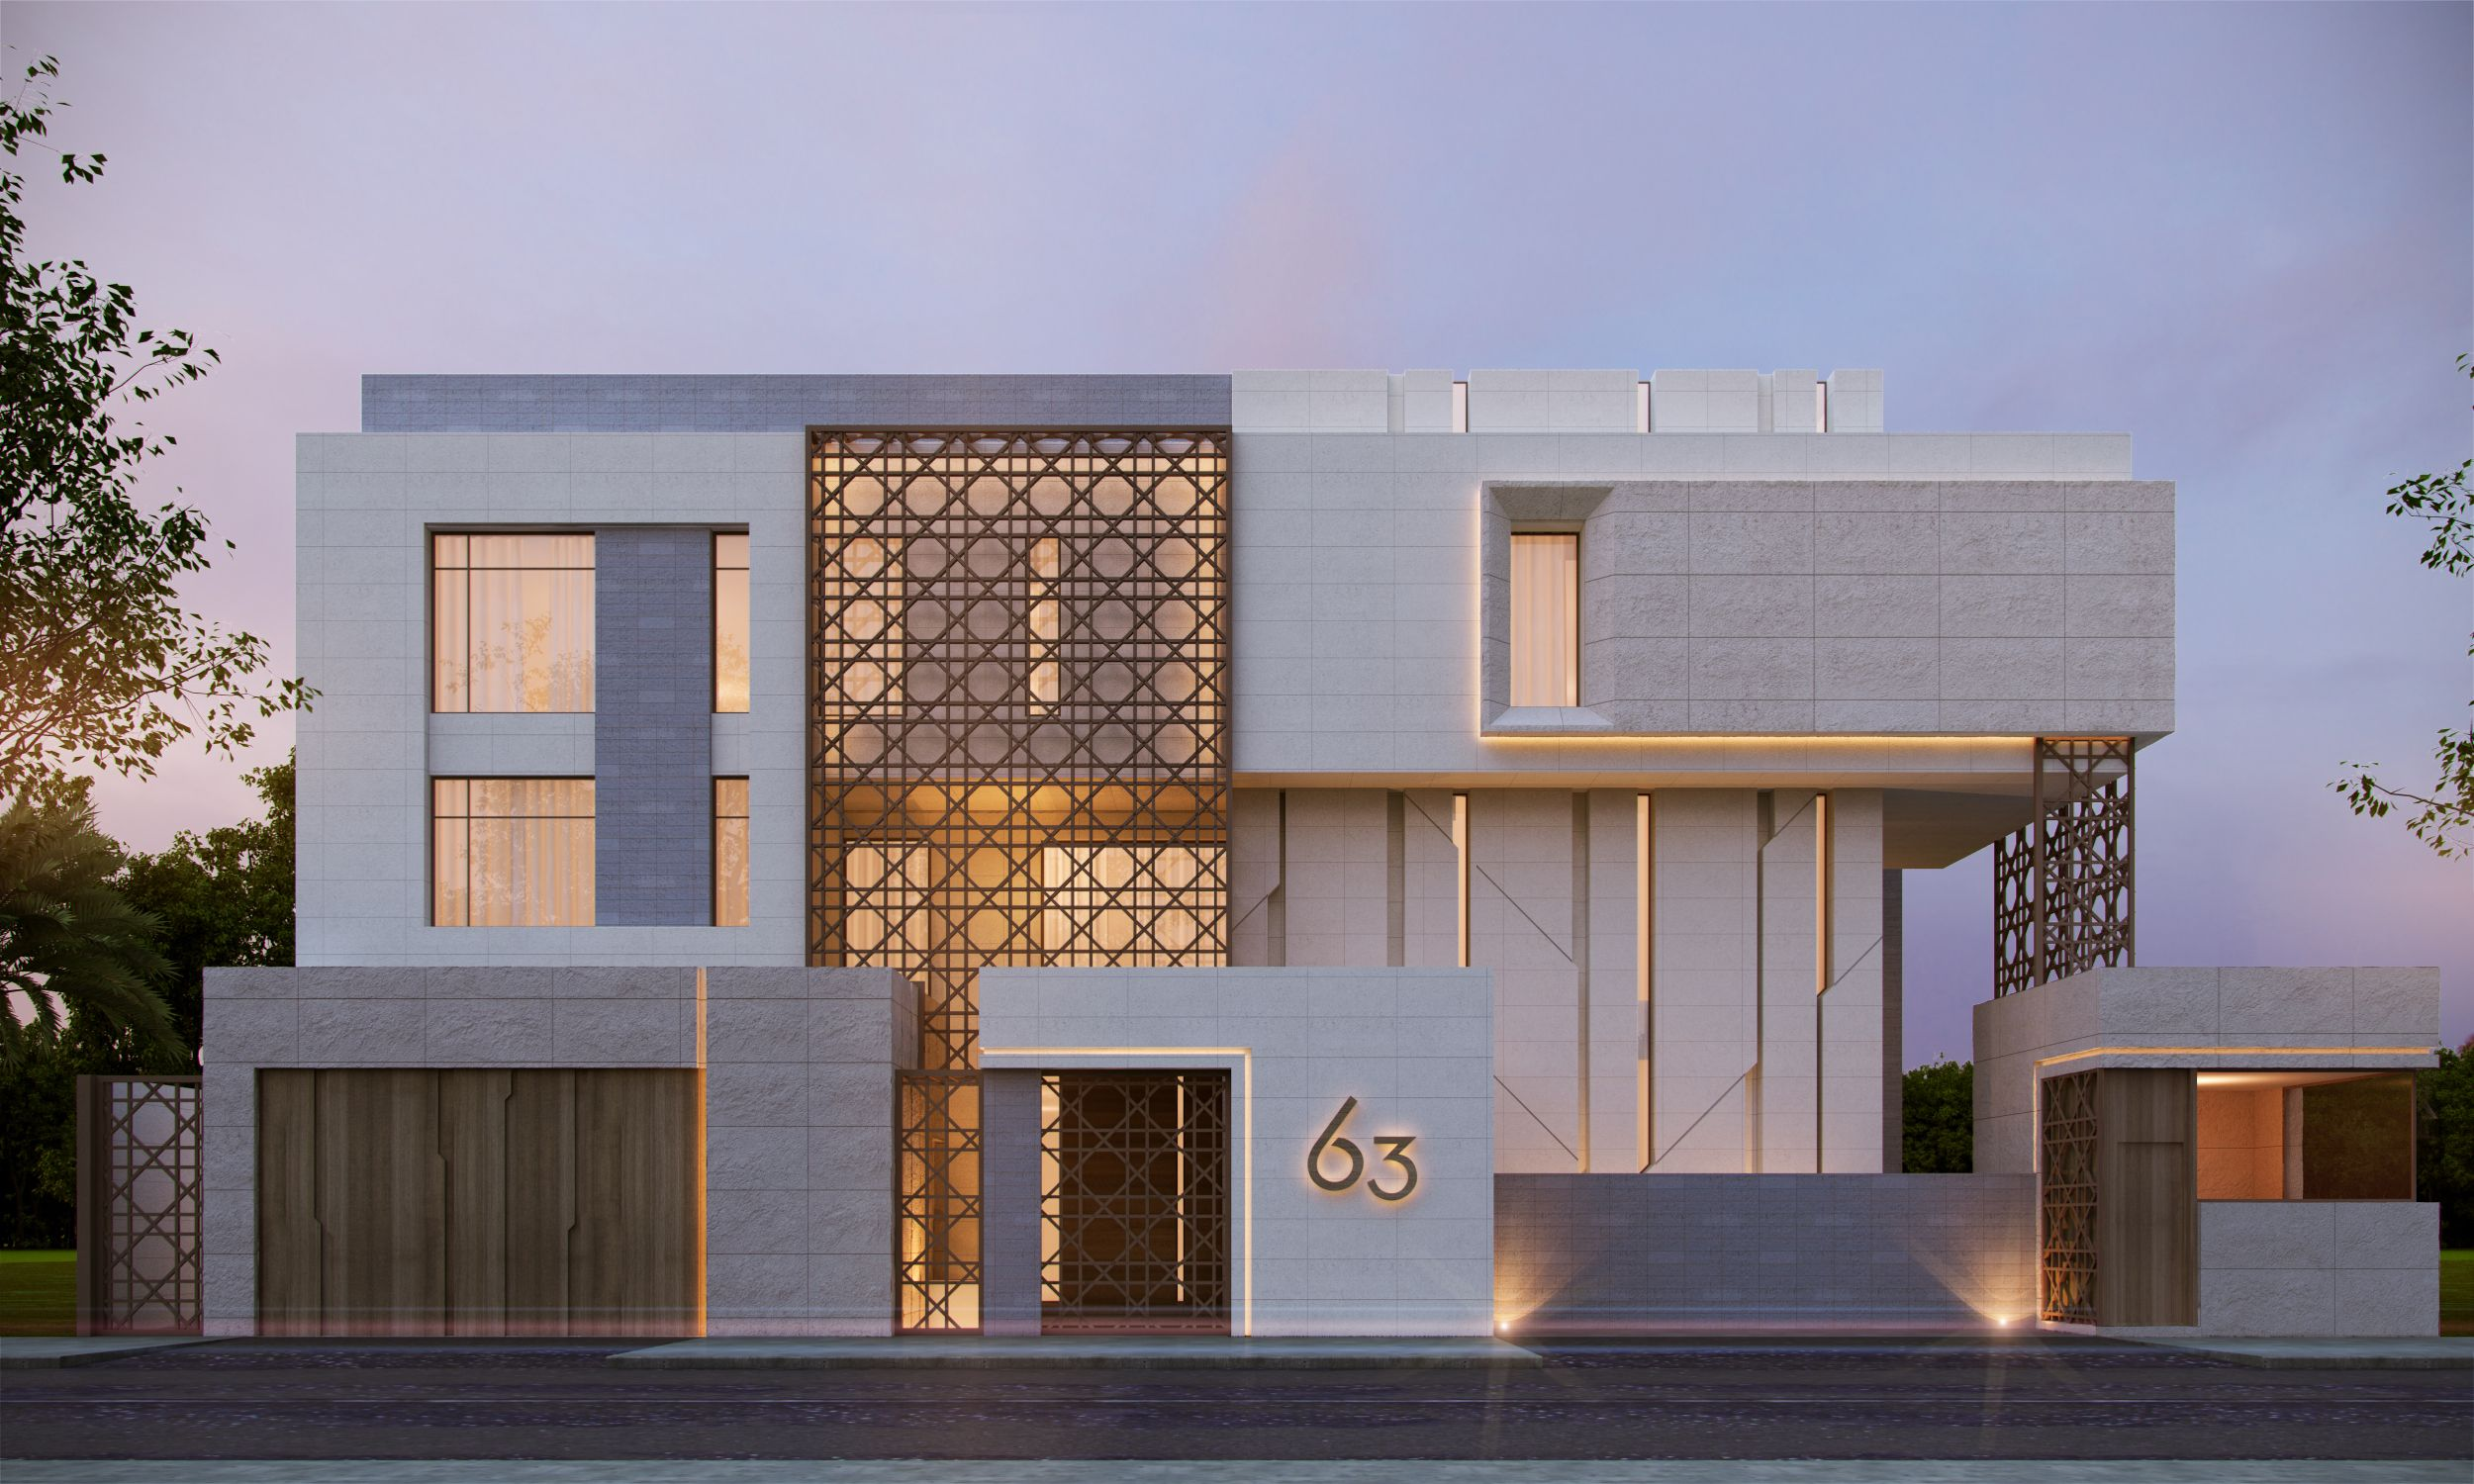 880 m private villa kuwait sarah sadeq architects sarah for Architecture villa design